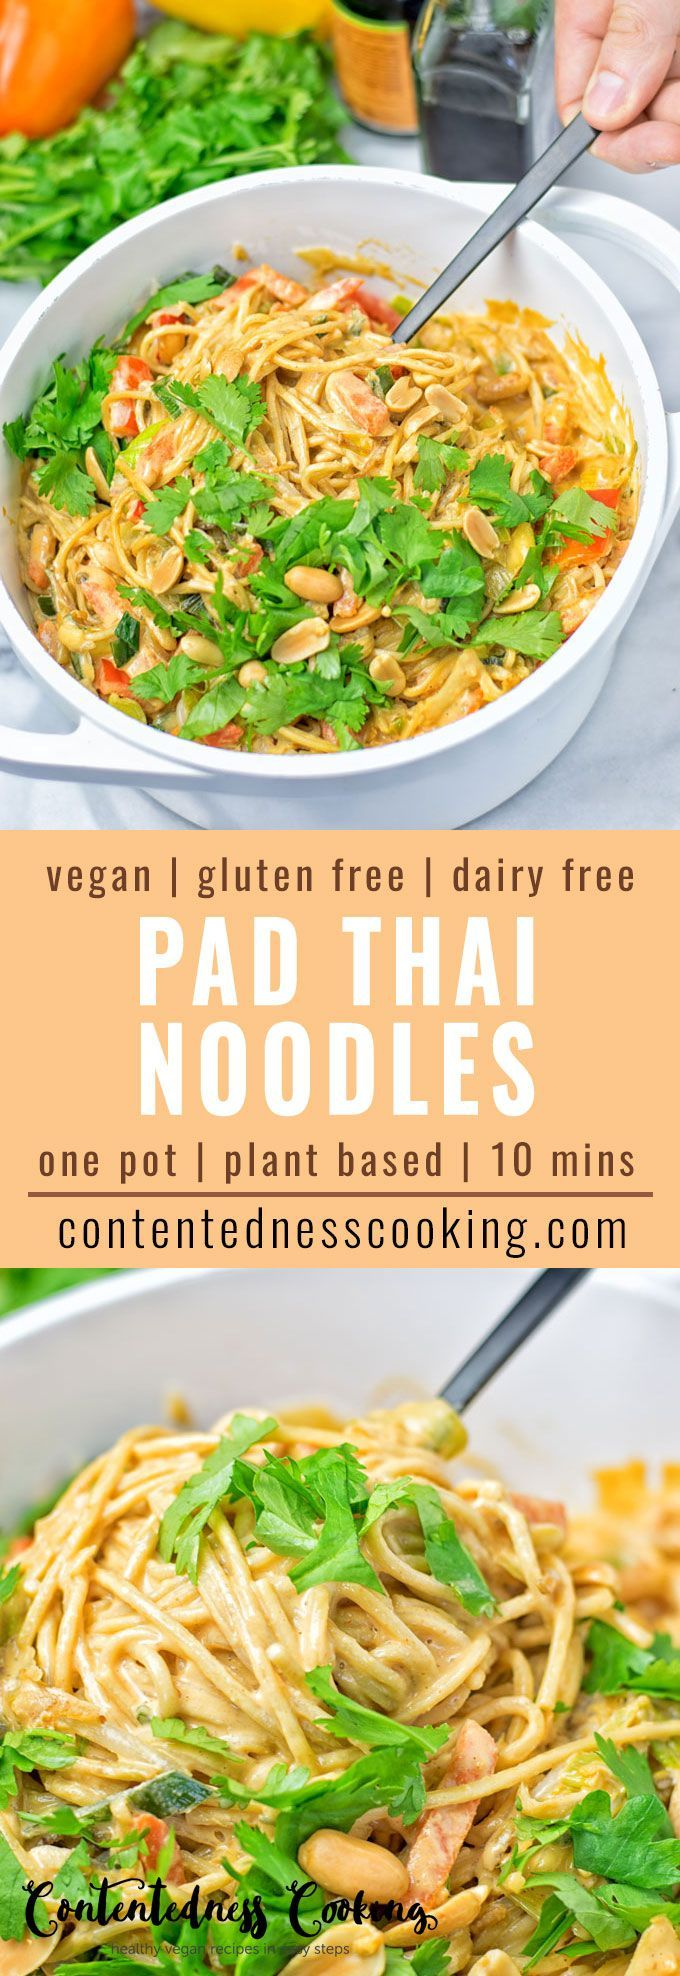 Pot Pad Thai Noodles These One Pot Pad Thai Noodles are super easy to make, vegan, gluten free and take just 10 minutes. It's healthy, fresh, spicy, with a lot of veggies and includes the best creamy peanut butter sauce you can ask for. Makes an amazing and satisfying dairy free dinner or lunch that will be gone in no time.These One Pot Pad Thai Noodles are su...